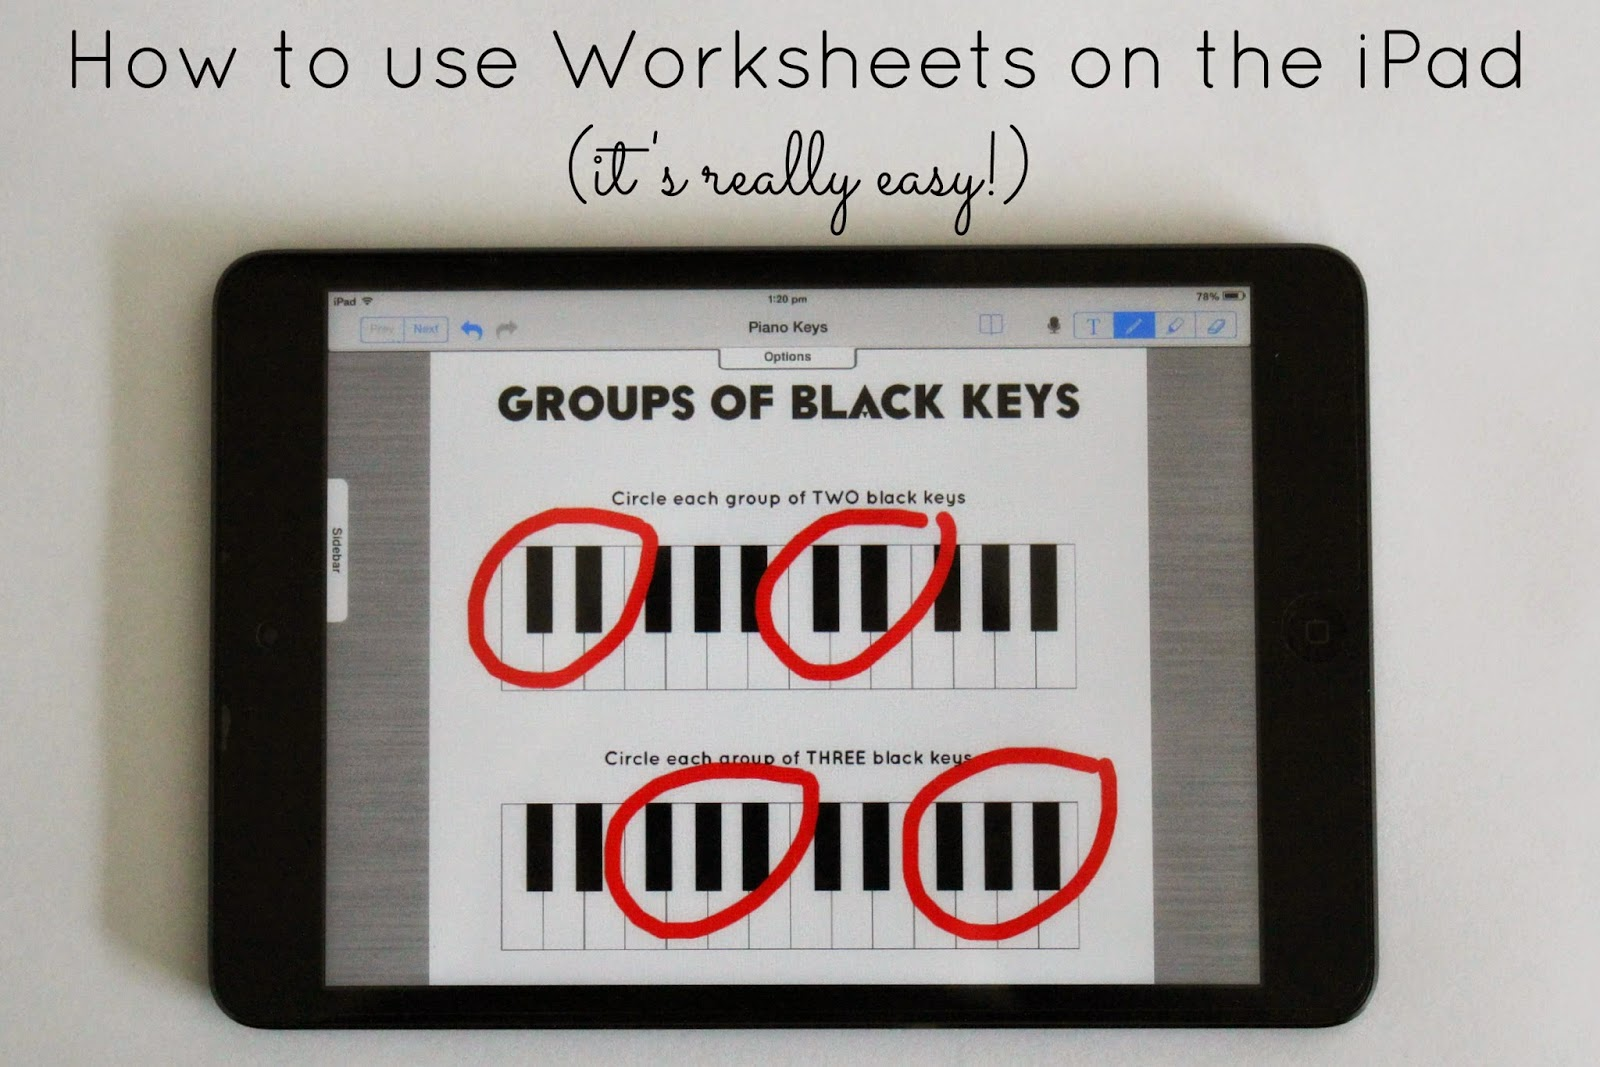 using ipad worksheets.jpeg